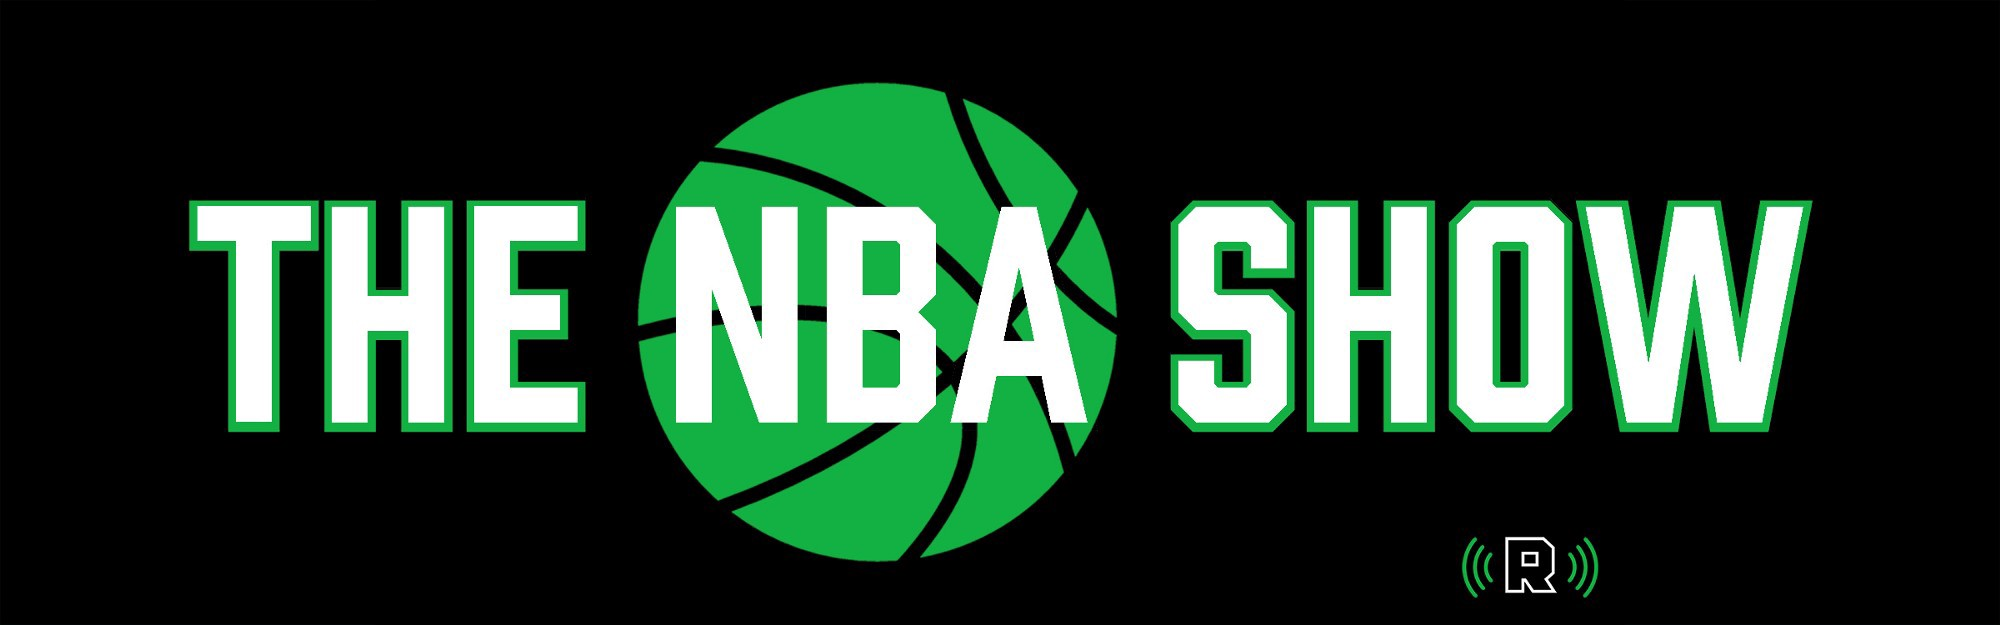 f95ab77390f2 The Ringer NBA Show Profile and Activity - Page 2 - The Ringer